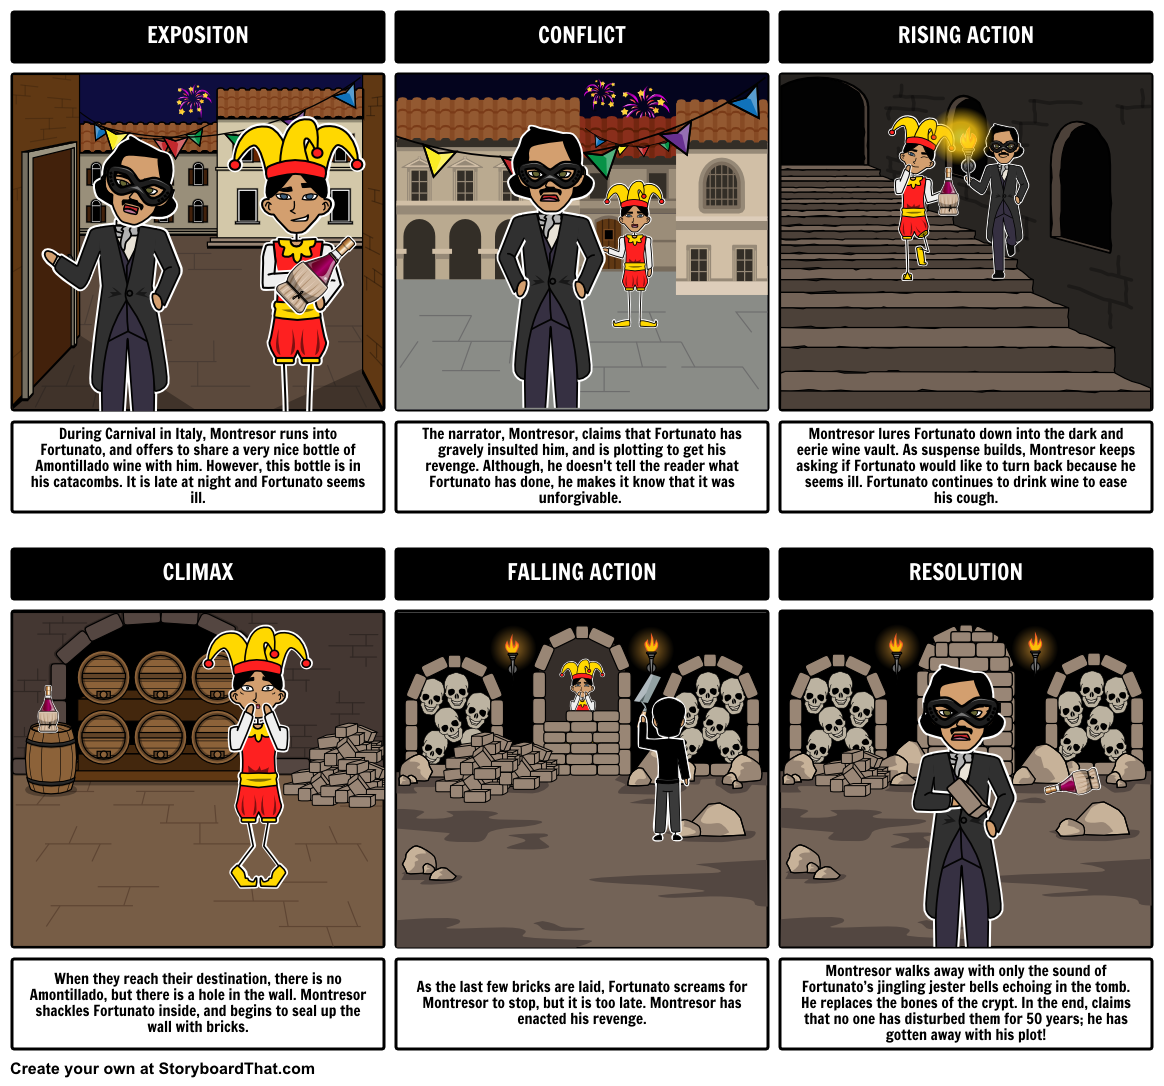 the cask of amontillado summary create a storyboard depicting a the cask of amontillado by edgar allan poe is a short story rich language dark themes lesson plans include a plot diagram verbal irony themes